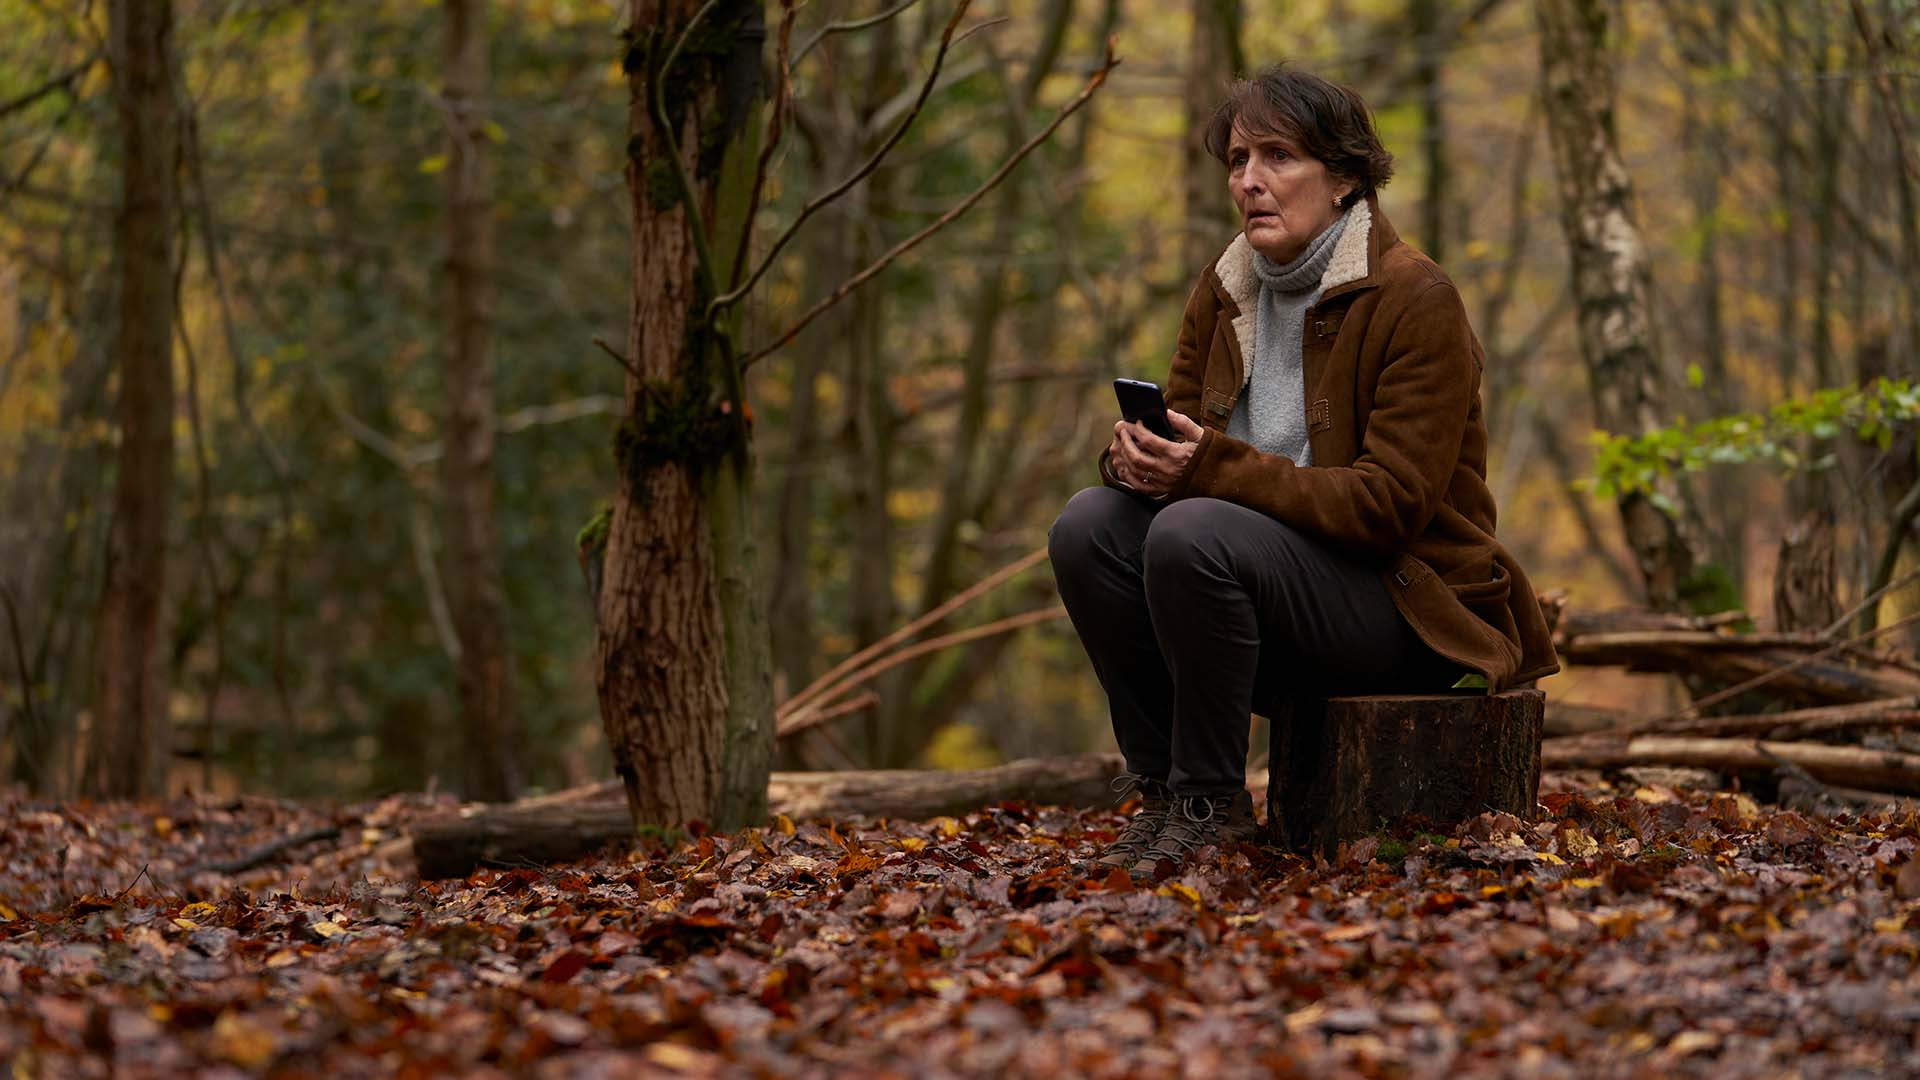 Fiona Shaw as Emma Chambers sitting in a wooded area looking concerned